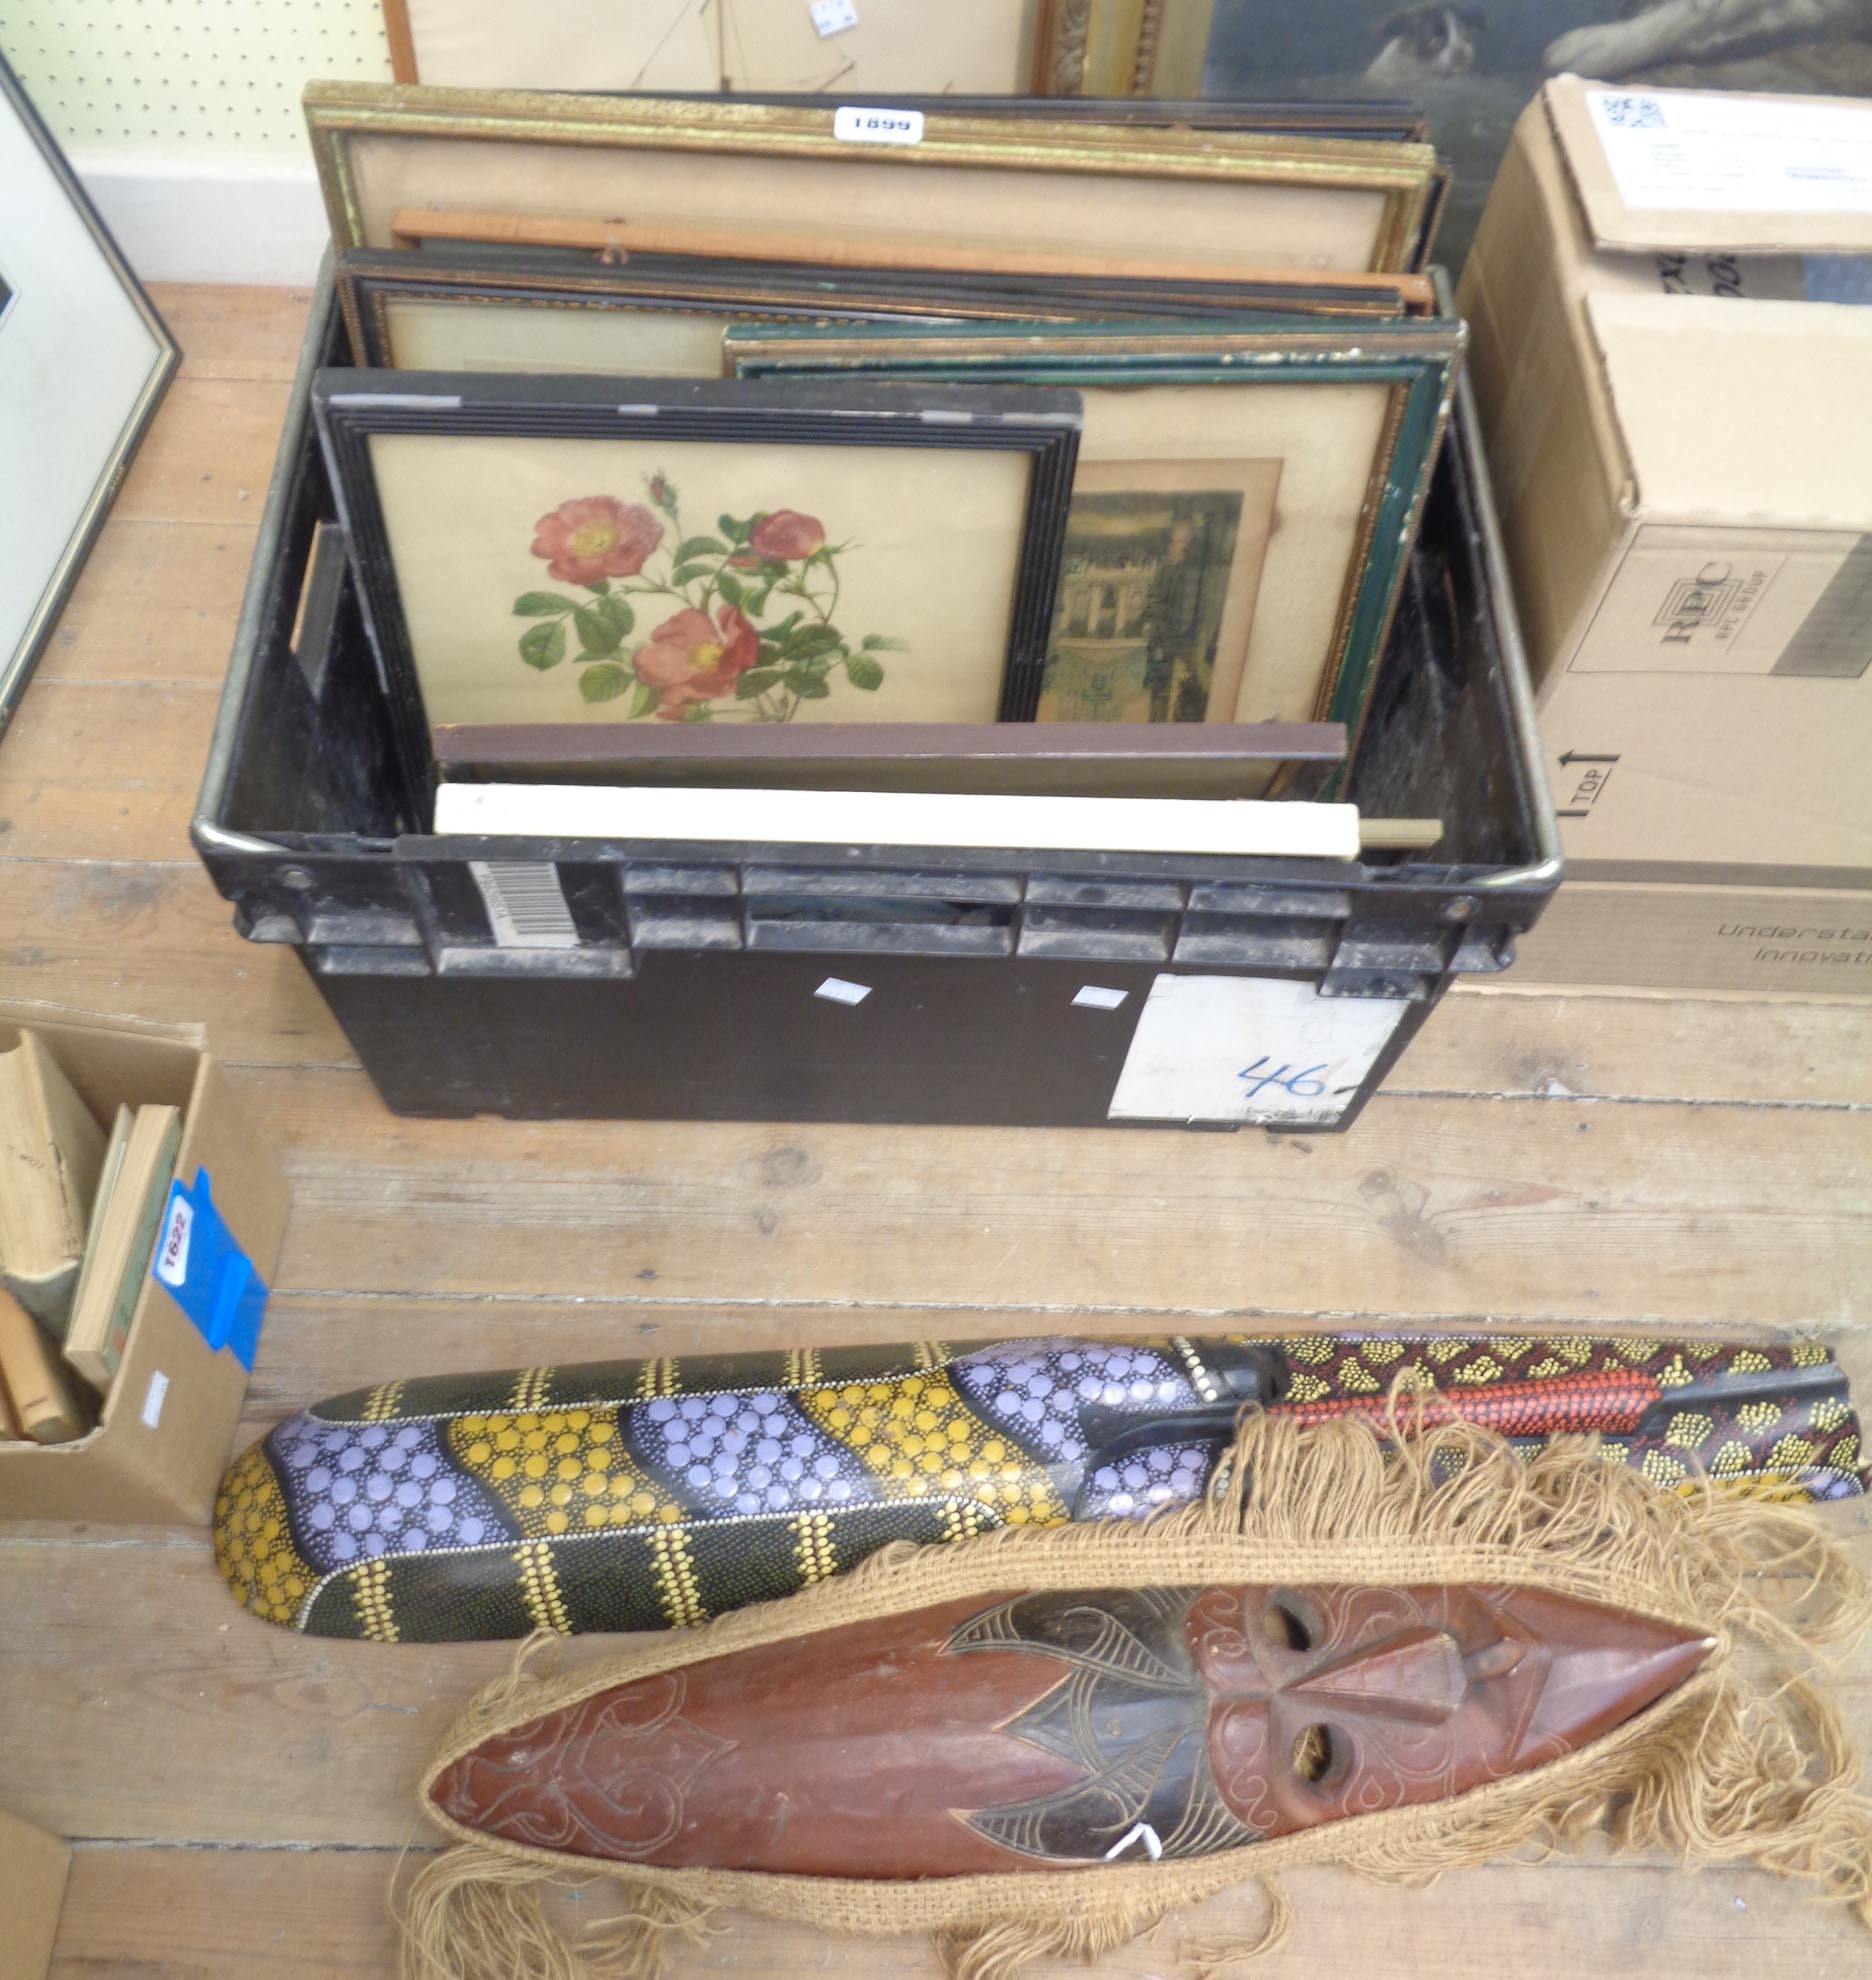 A crate containing assorted pictures and prints including various Hogarth framed monochrome